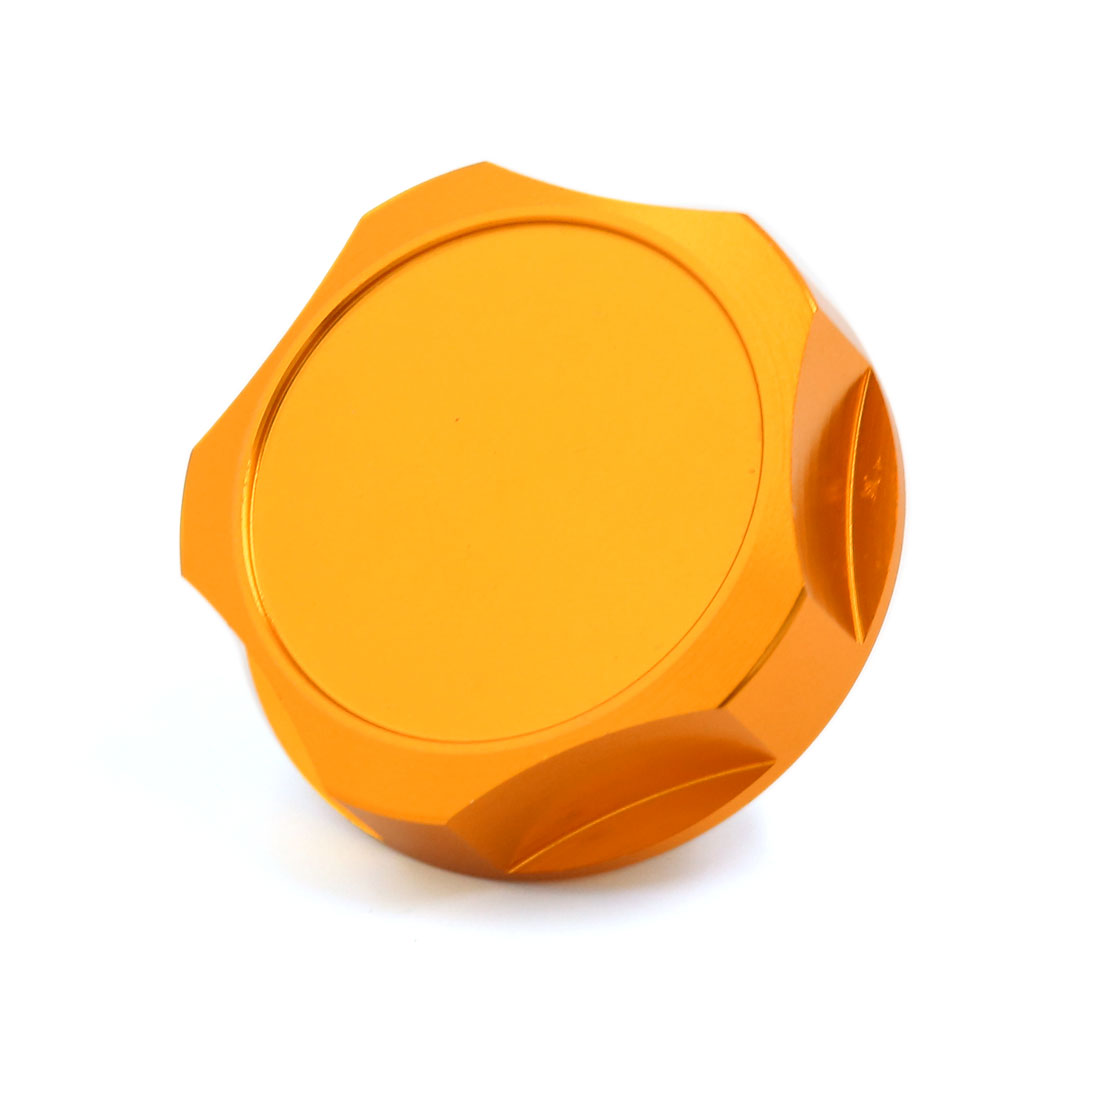 Gold Tone Aluminum Alloy Engine Fuel Gas Tank Cover Cap for Car Vehicle